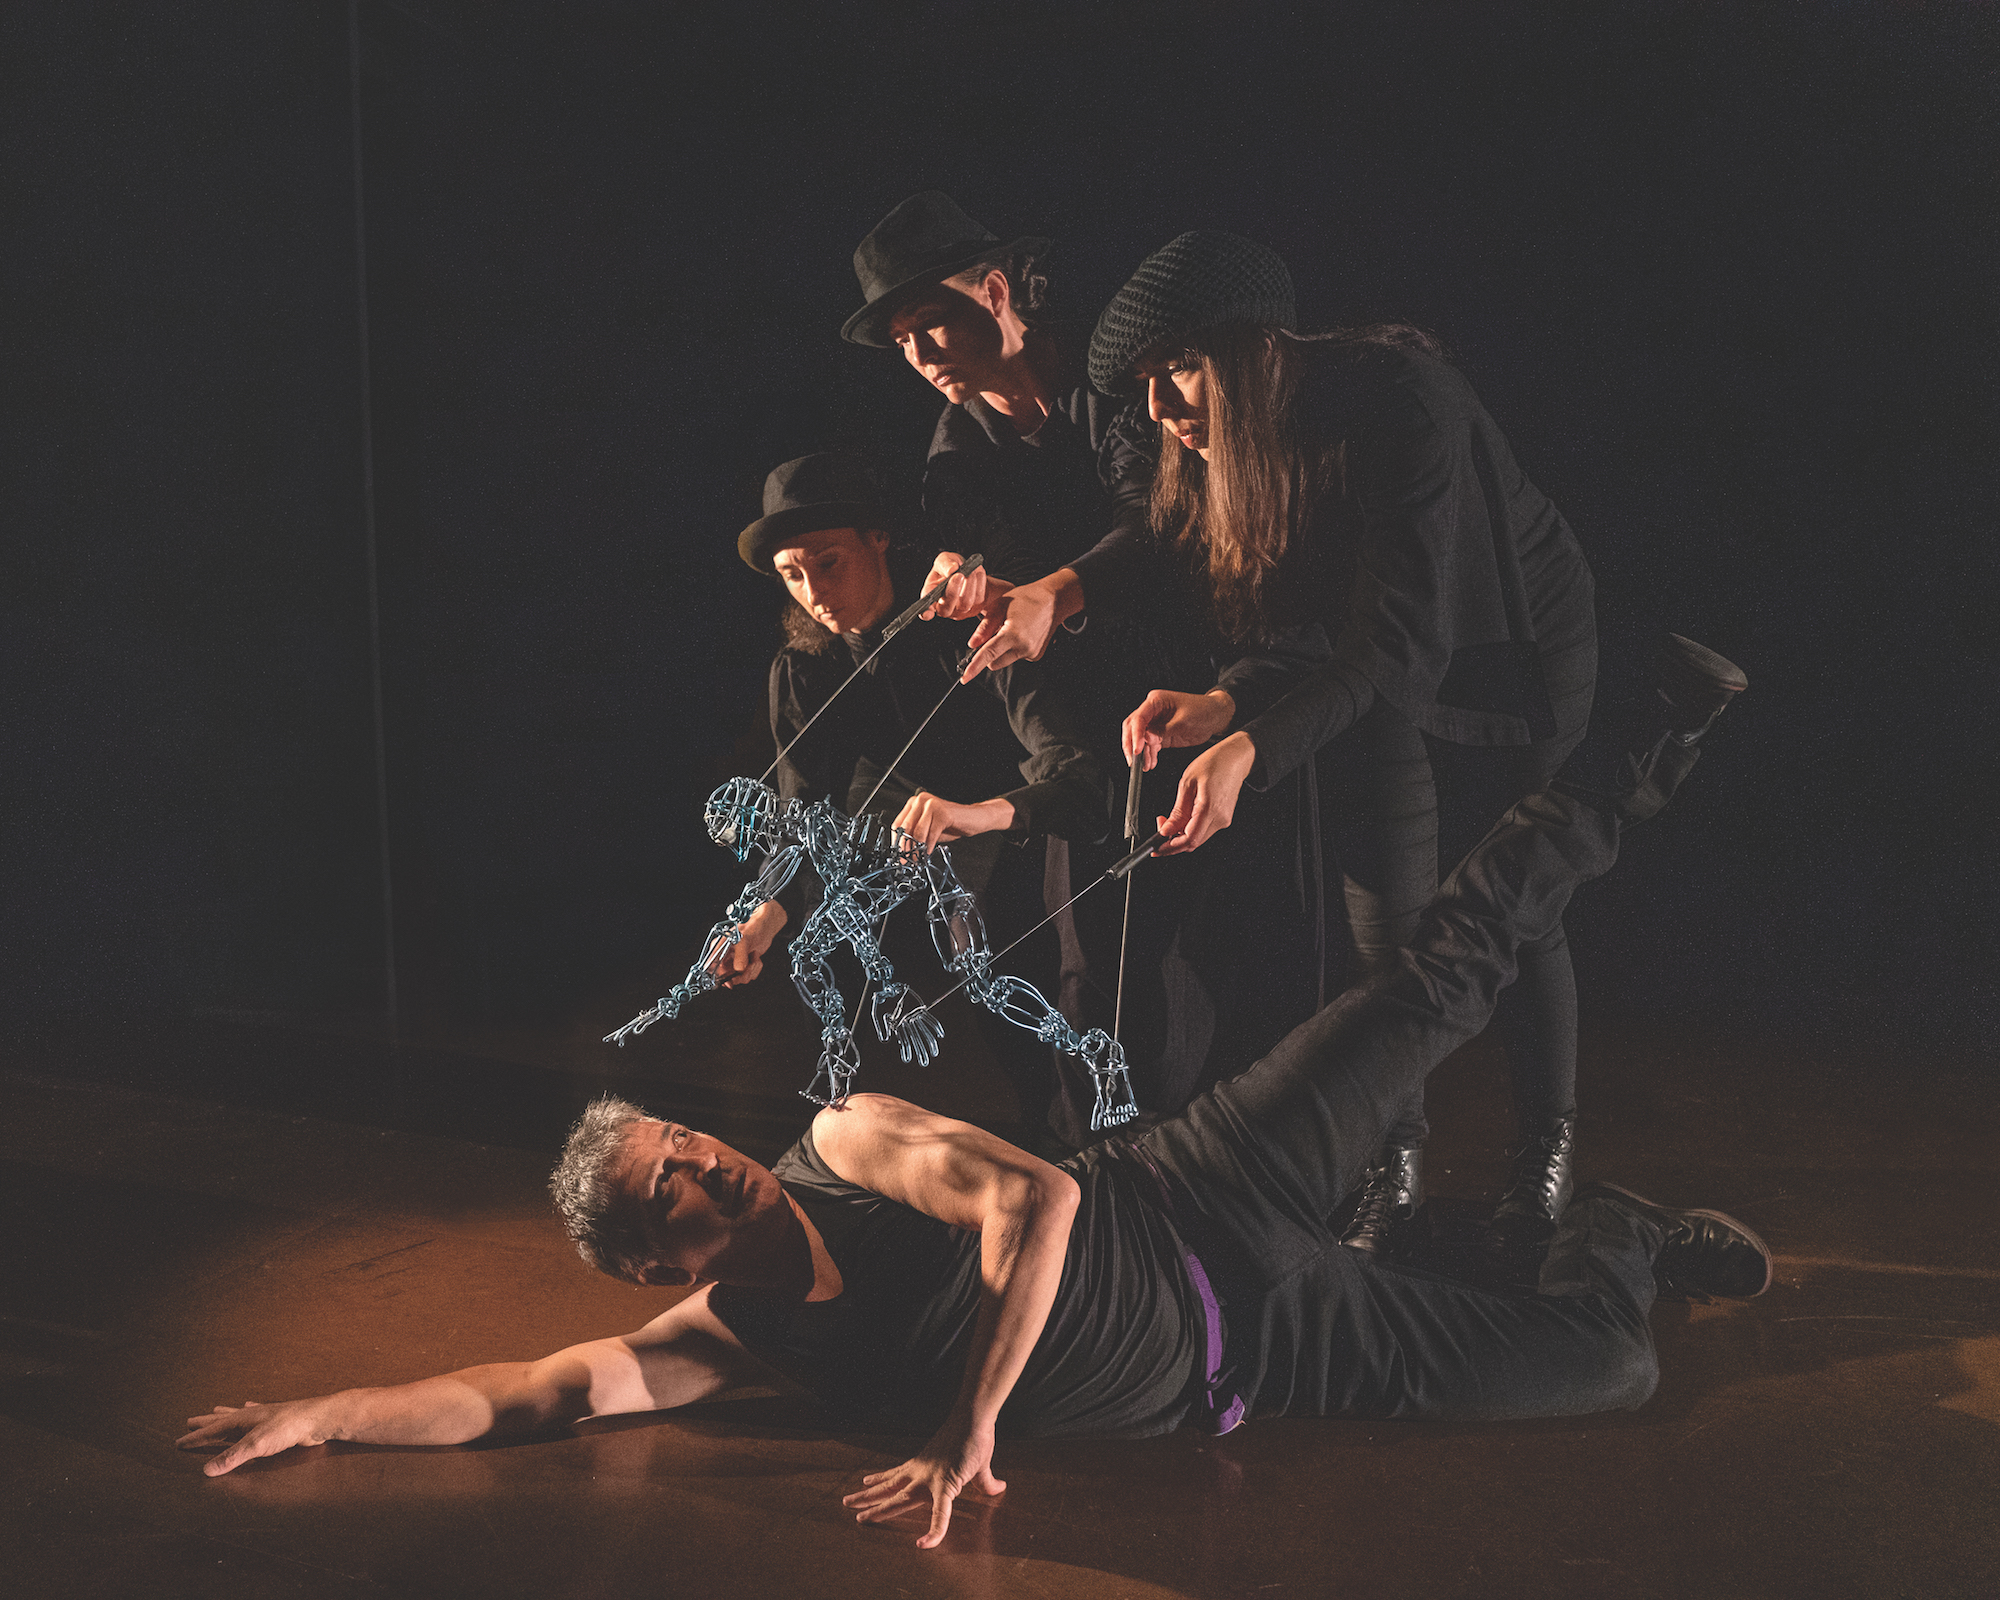 A performer is lying on the floor with their hands on the floor. They are looking up at a metal human figure being controlled by three puppeteers wearing black.